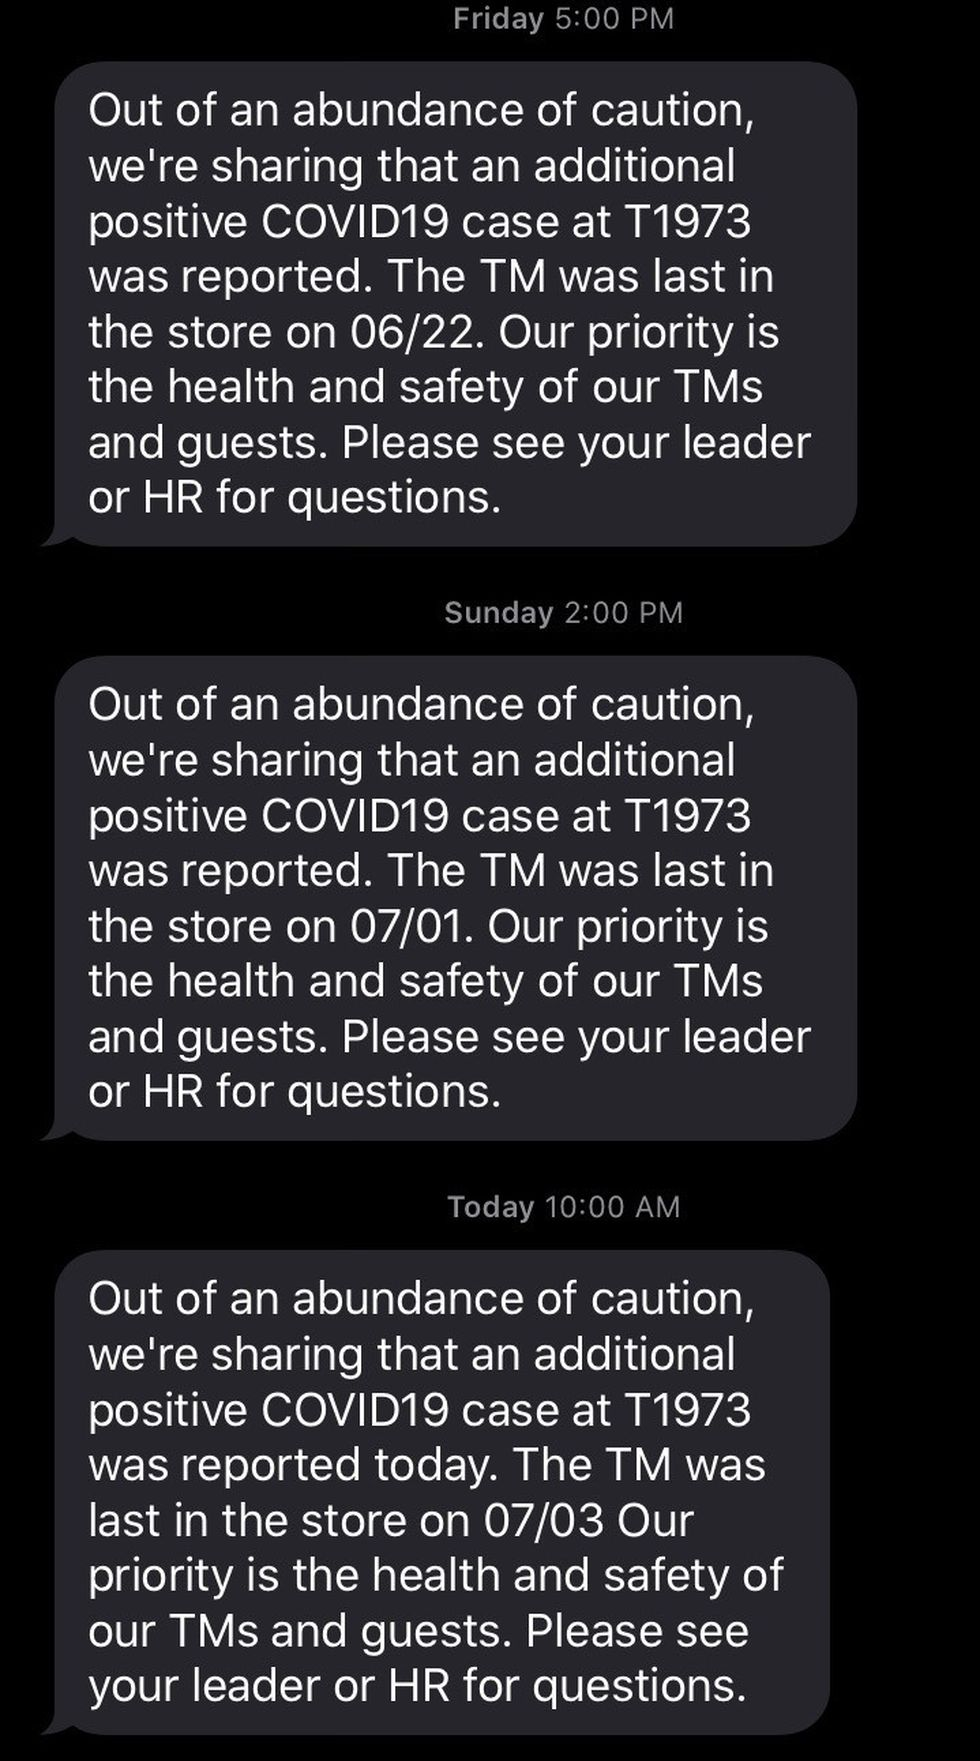 An anonymous Target employee at the Tallahassee North store shared texts from store management with WCTV regarding texts sent out to employees about positive COVID-19 members at the location.